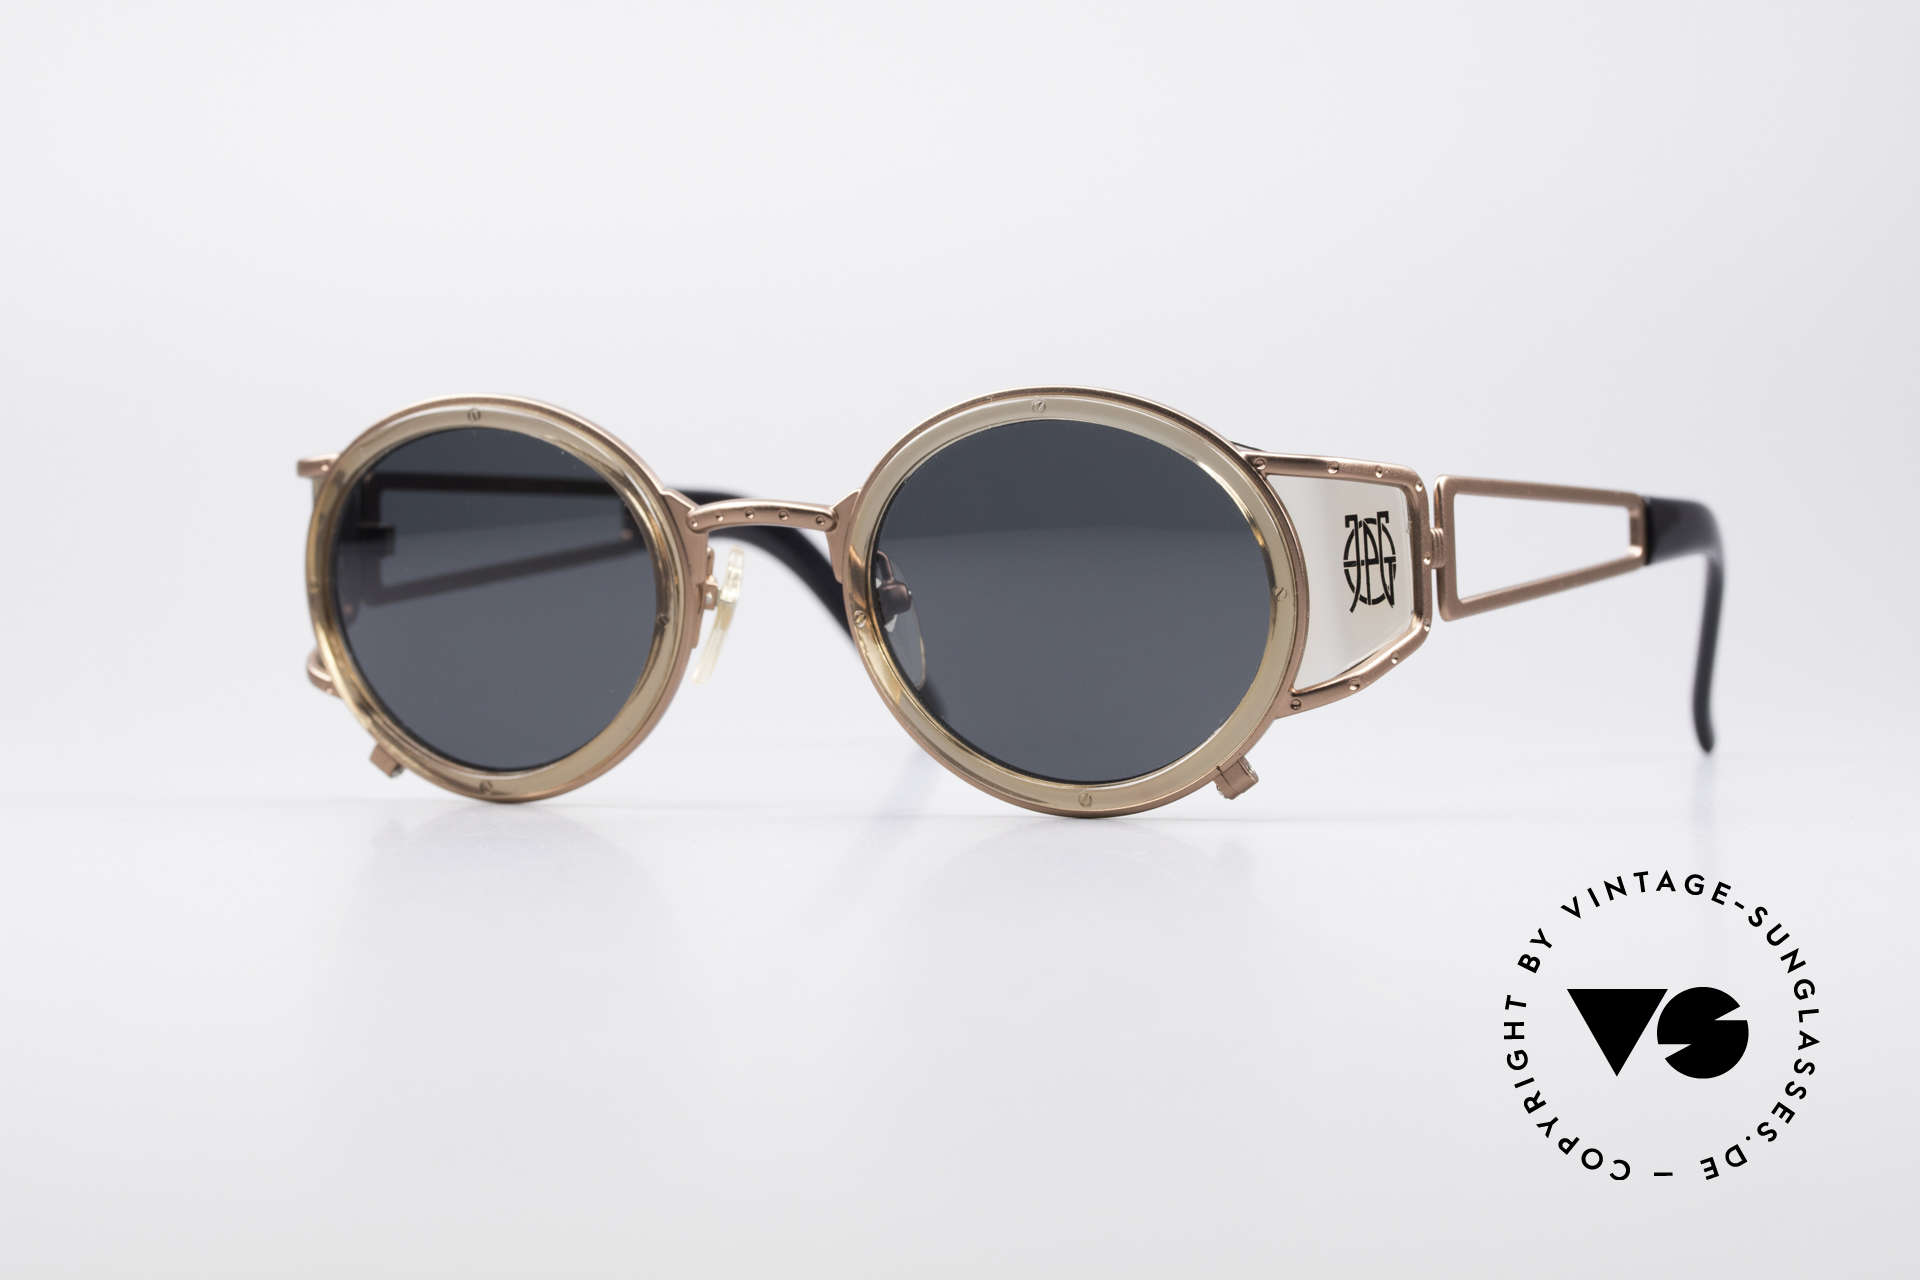 Jean Paul Gaultier 58-6201 Vintage Celebrity Glasses, outstanding designer shades by Jean Paul GAULTIER, Made for Men and Women